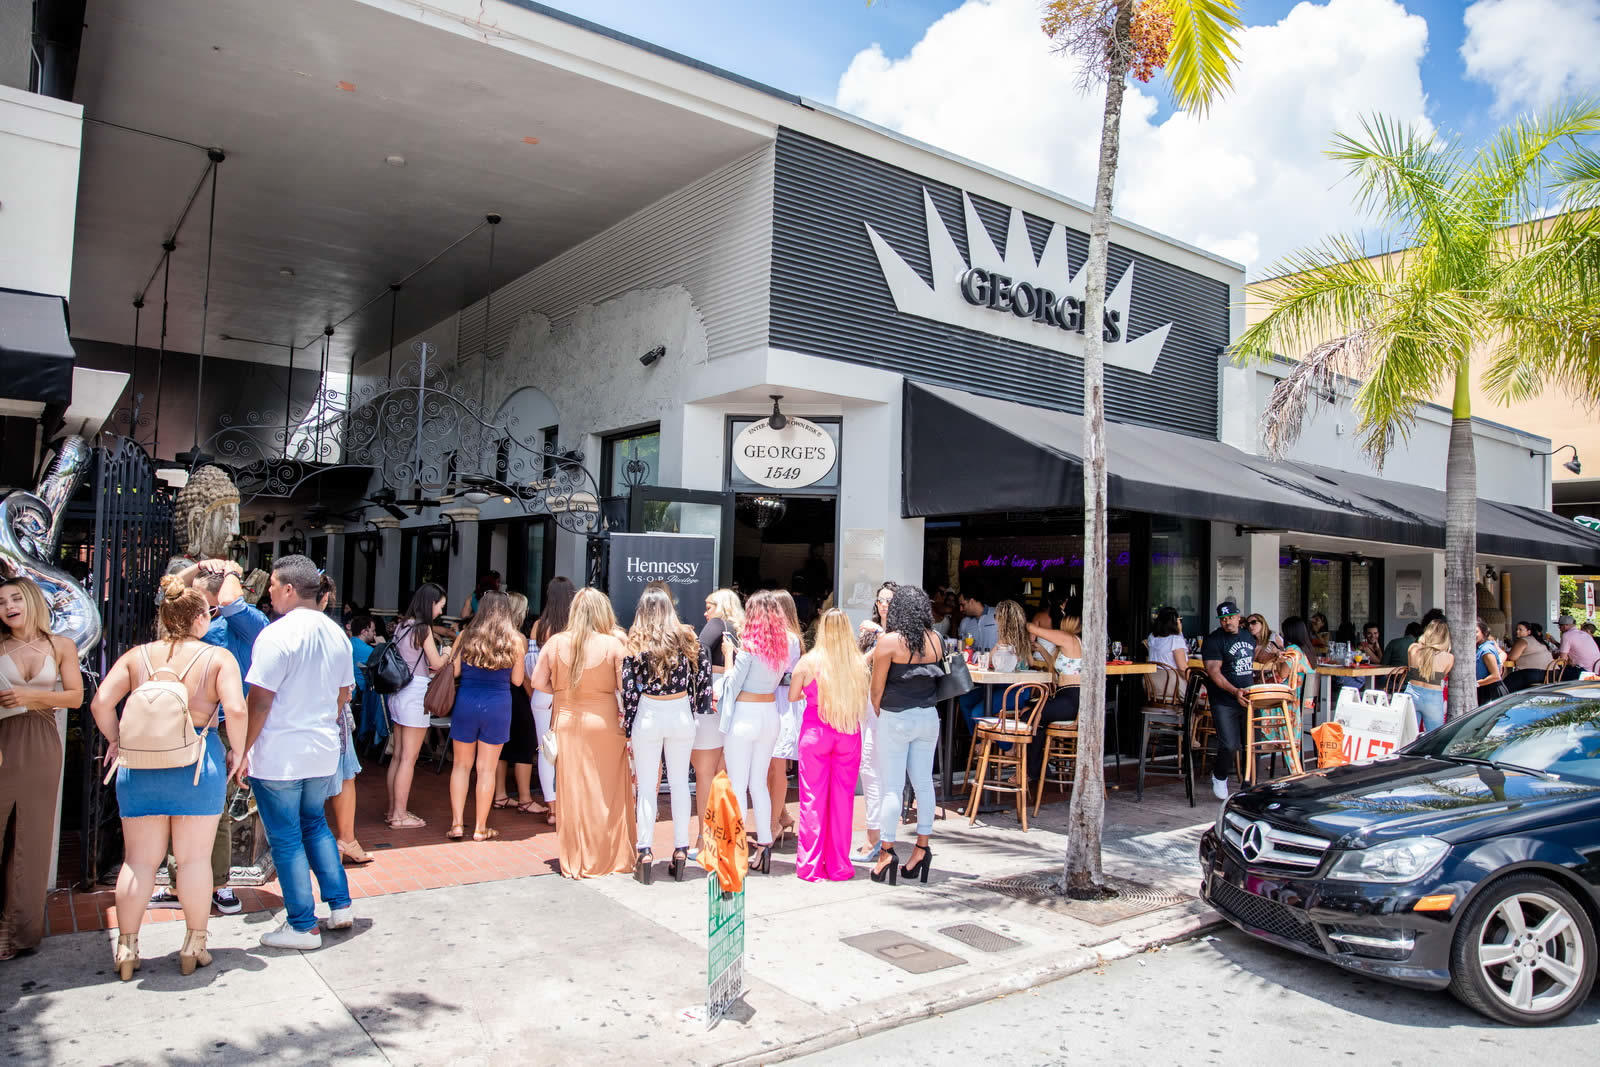 restaurant-georges-on-sunset-a-vendre-coral-gables-investissementrestaurant-georges-on-sunset-a-vendre-coral-gables-investissement